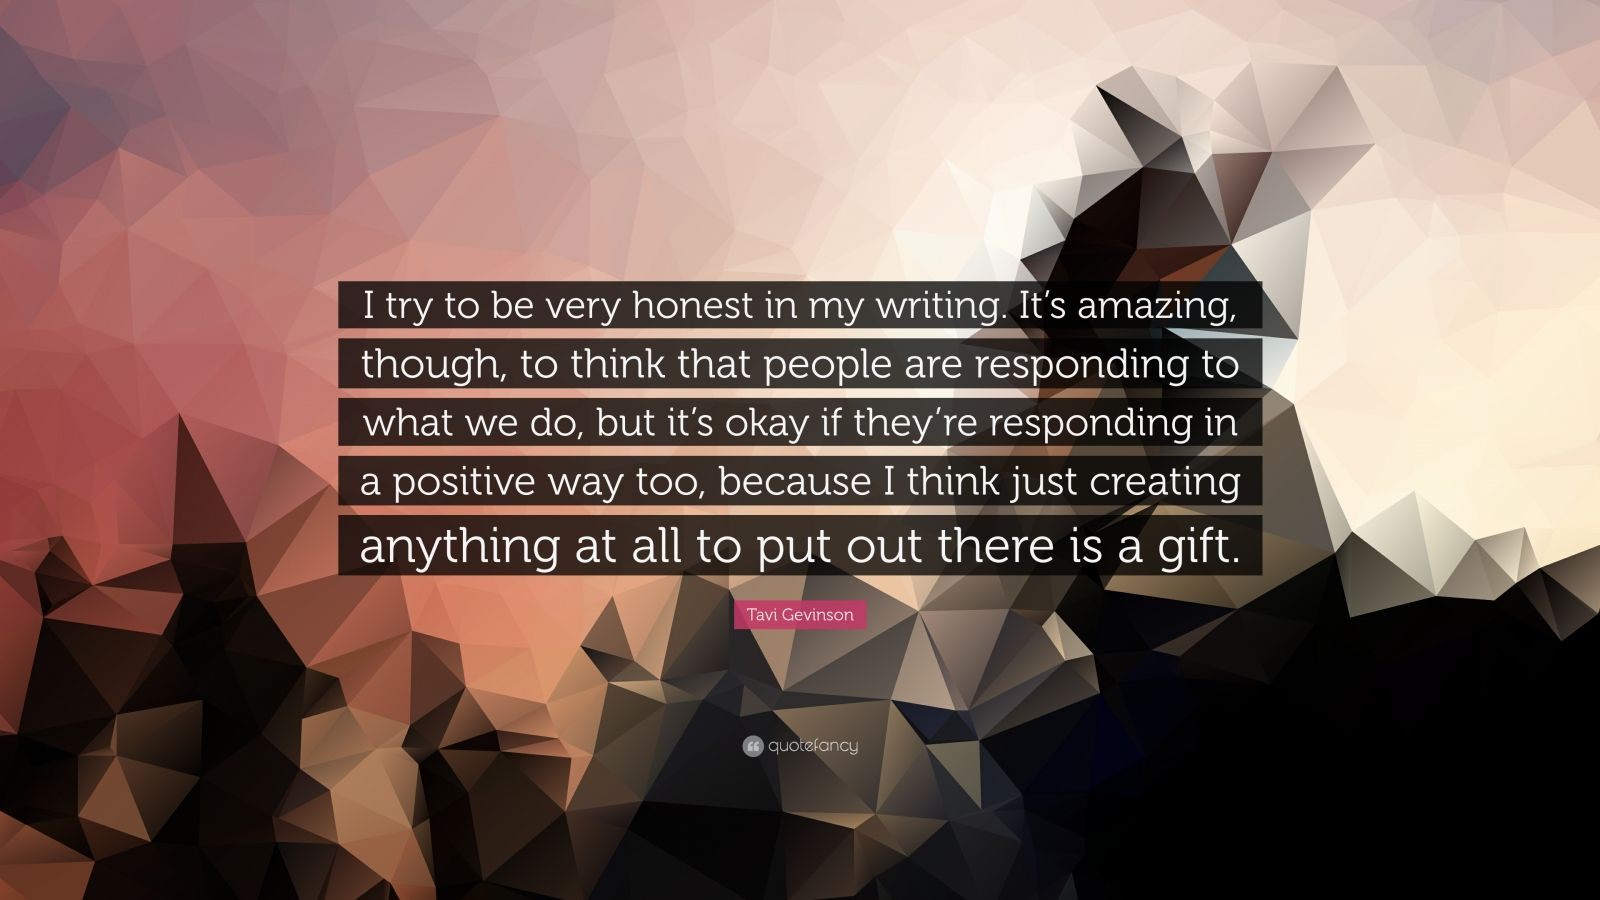 "Tavi Gevinson Quote: ""I try to be very honest in my writing. It's amazing, though, to think that people are responding to what we do, but it's okay if they're responding in a positive way too, because I think just creating anything at all to put out there is a gift."""